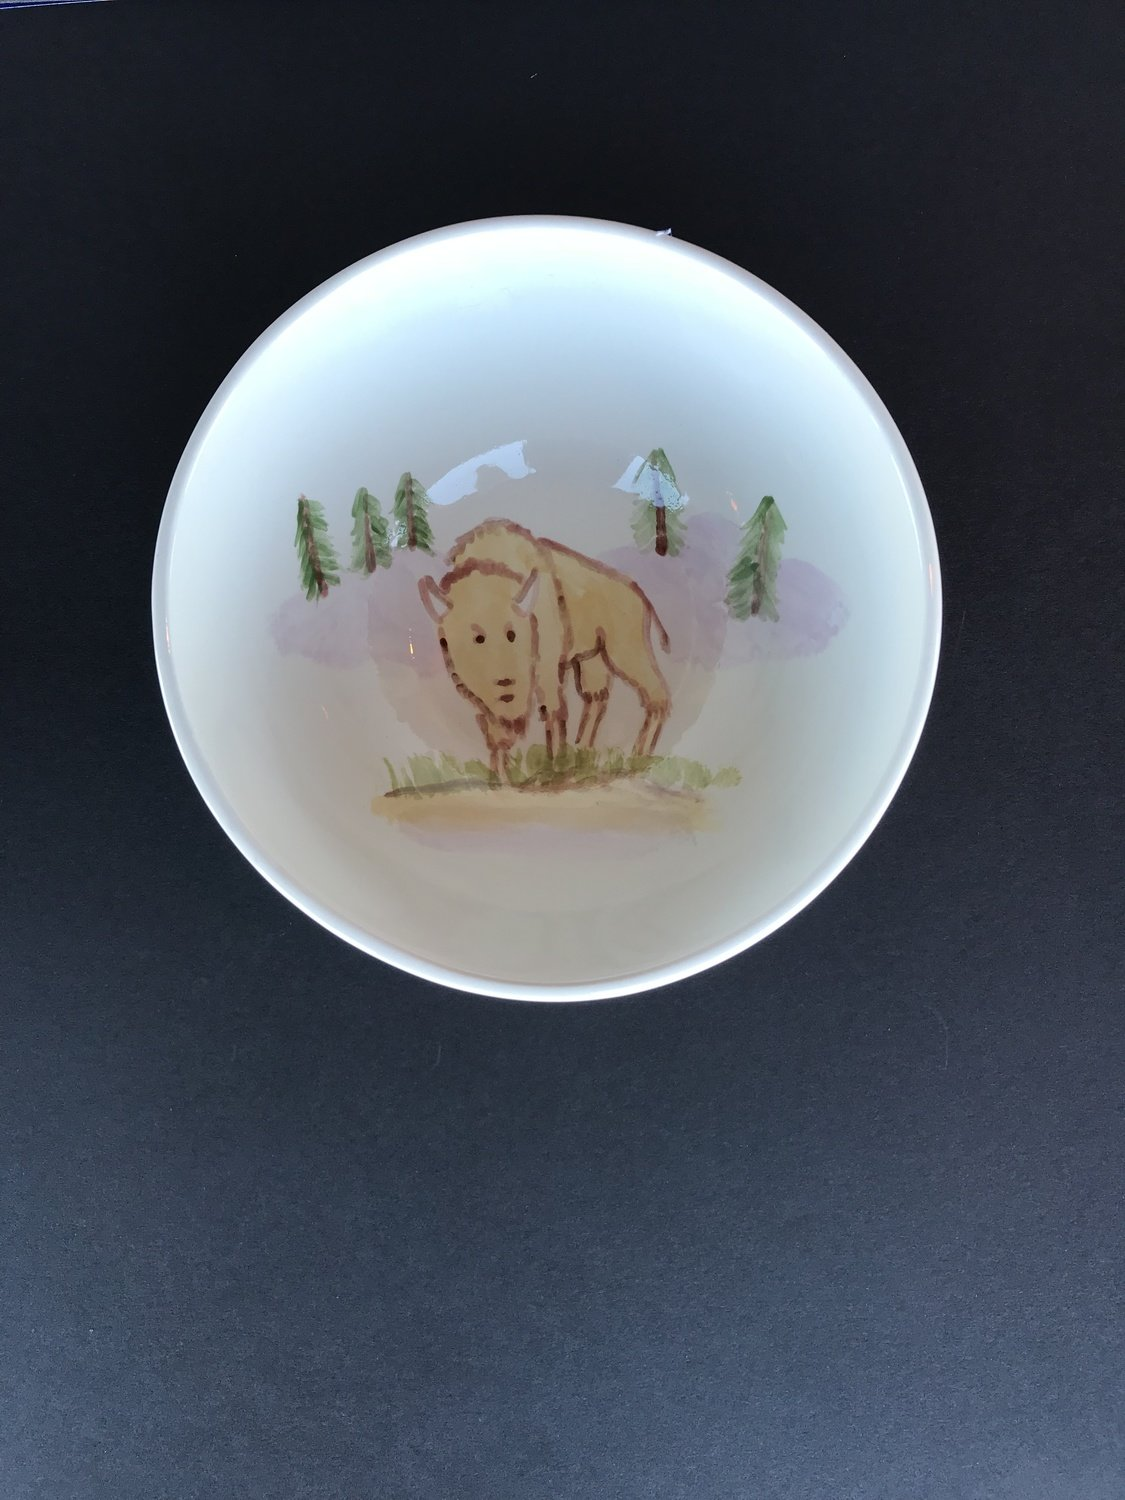 Cereal Bowl Bison on the Hill